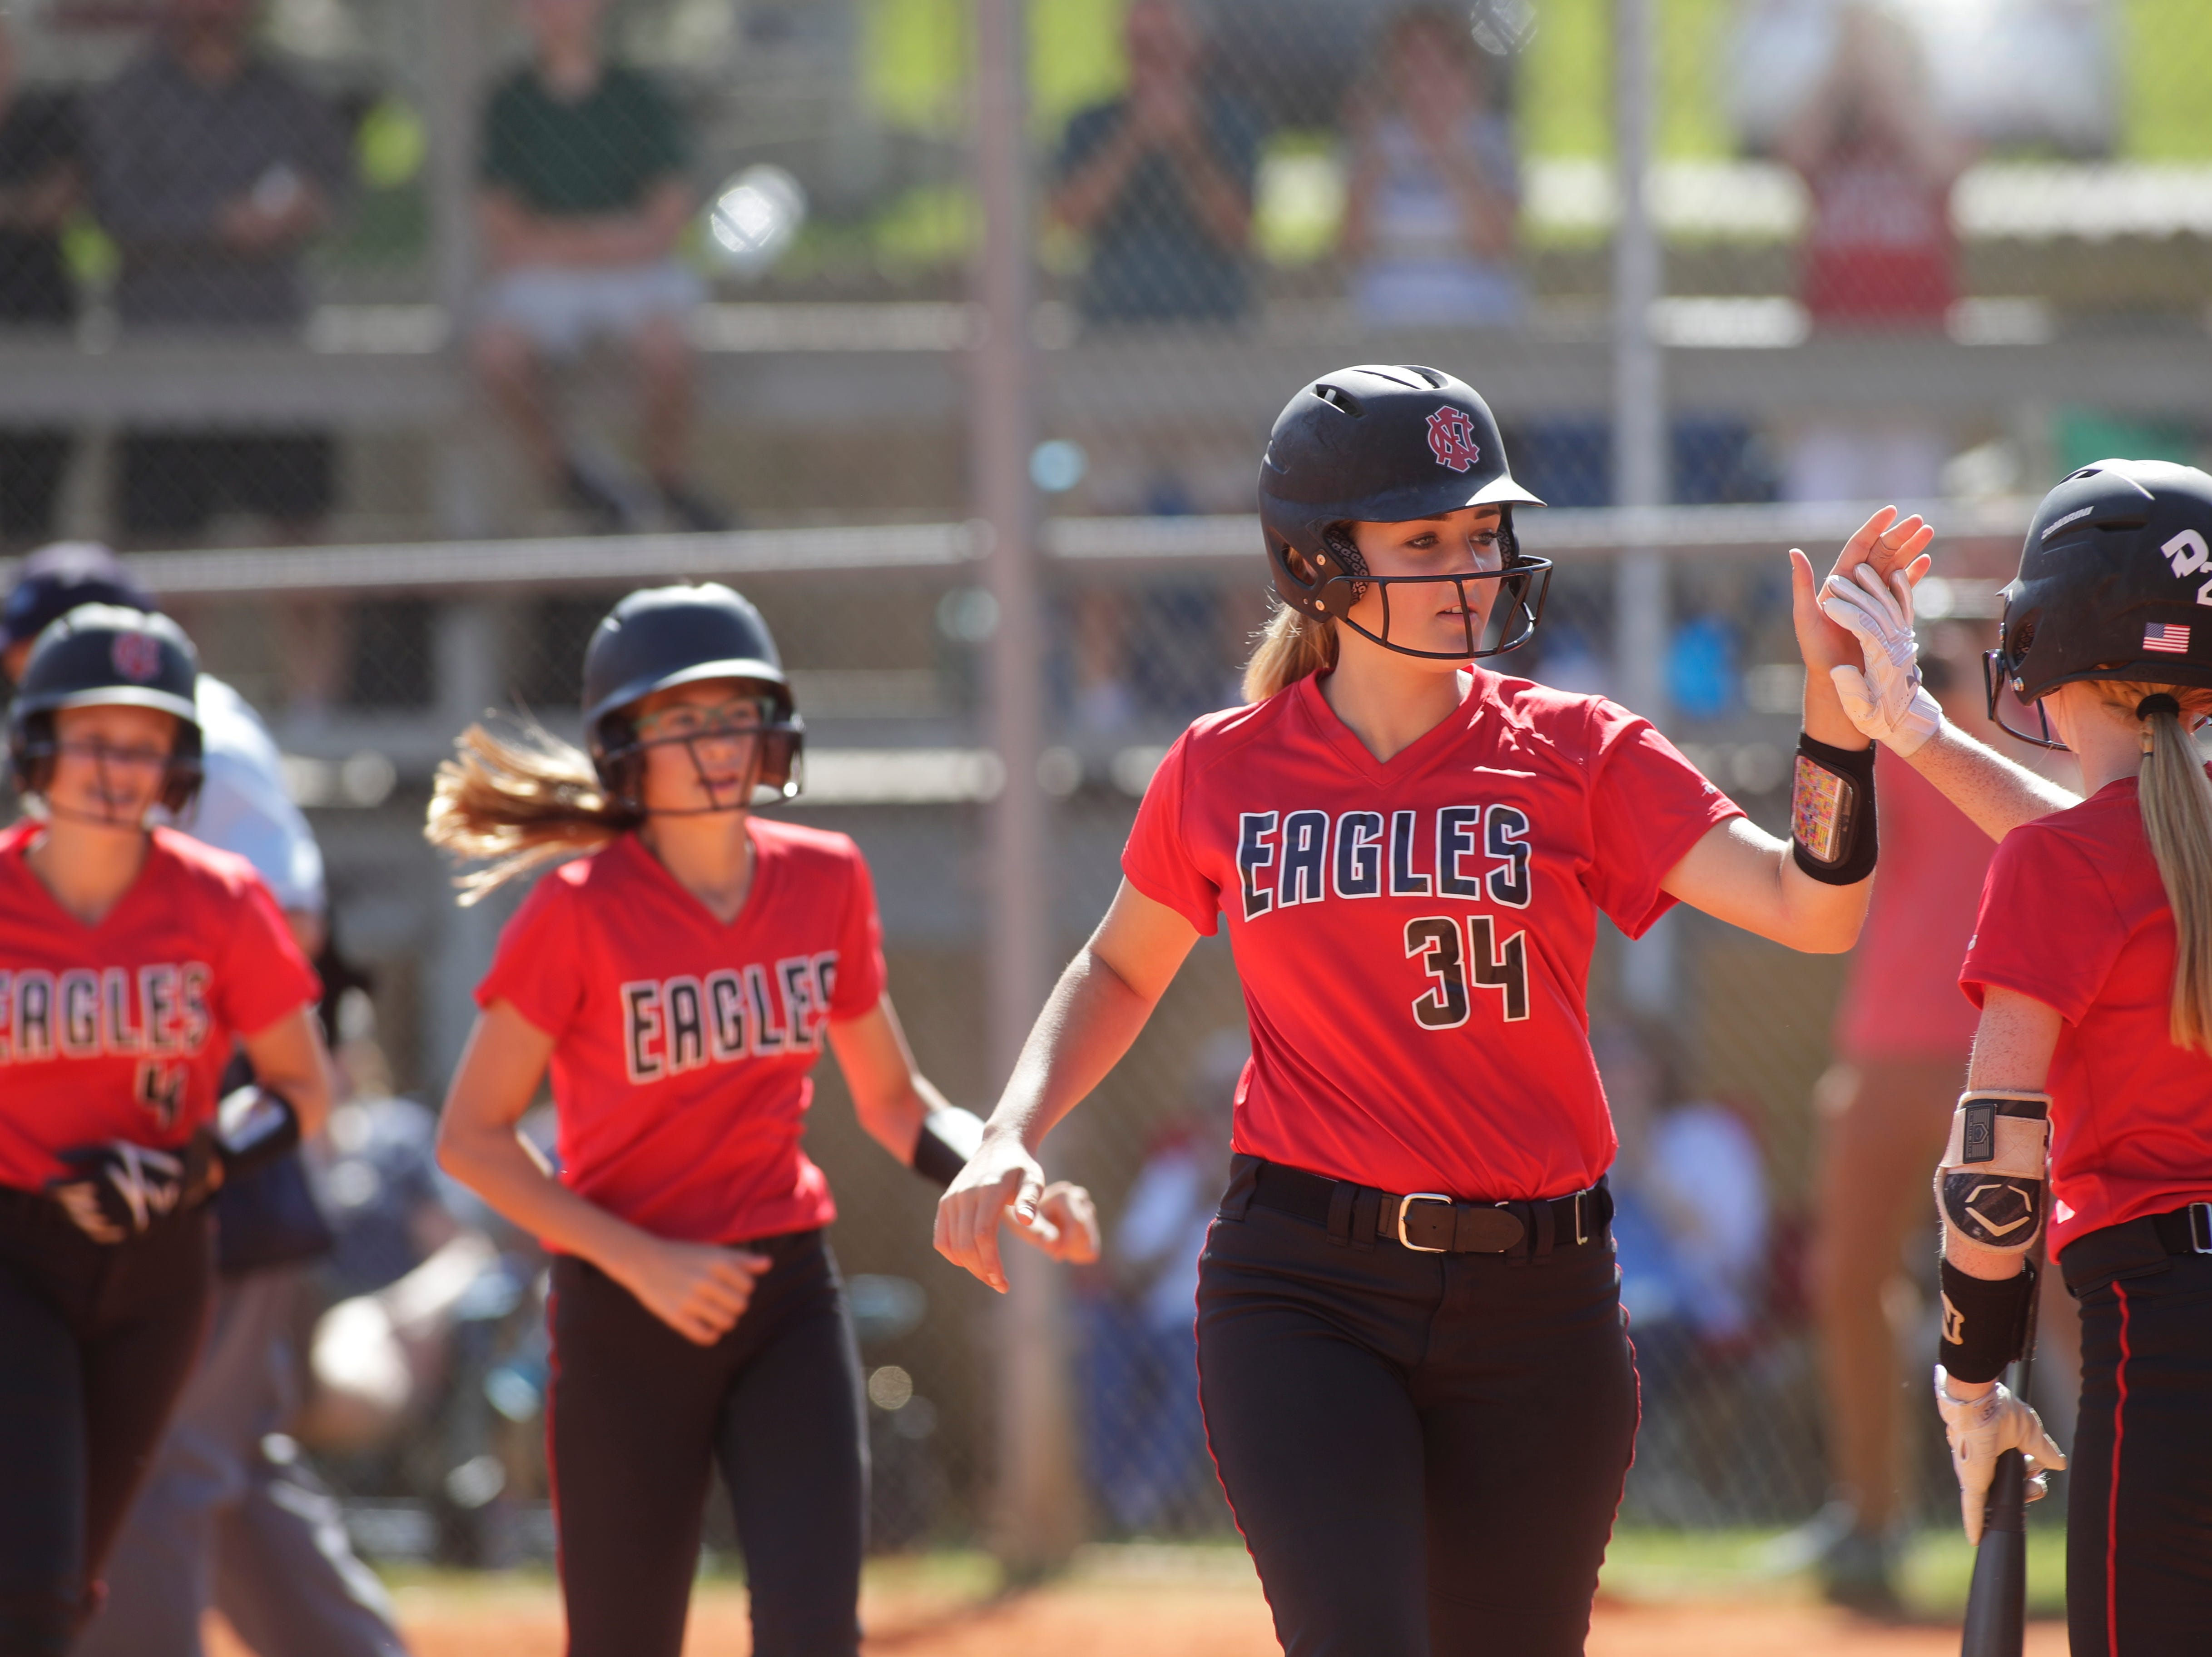 North Florida Christian's Ramsey Shiver (34) high fives a teammate after scoring a run during the 1-3A regional final game between NFC and University Christian at NFC Tuesday, May 14, 2019. UC defeated NFC 16 to 11 to advance to the state tournament.